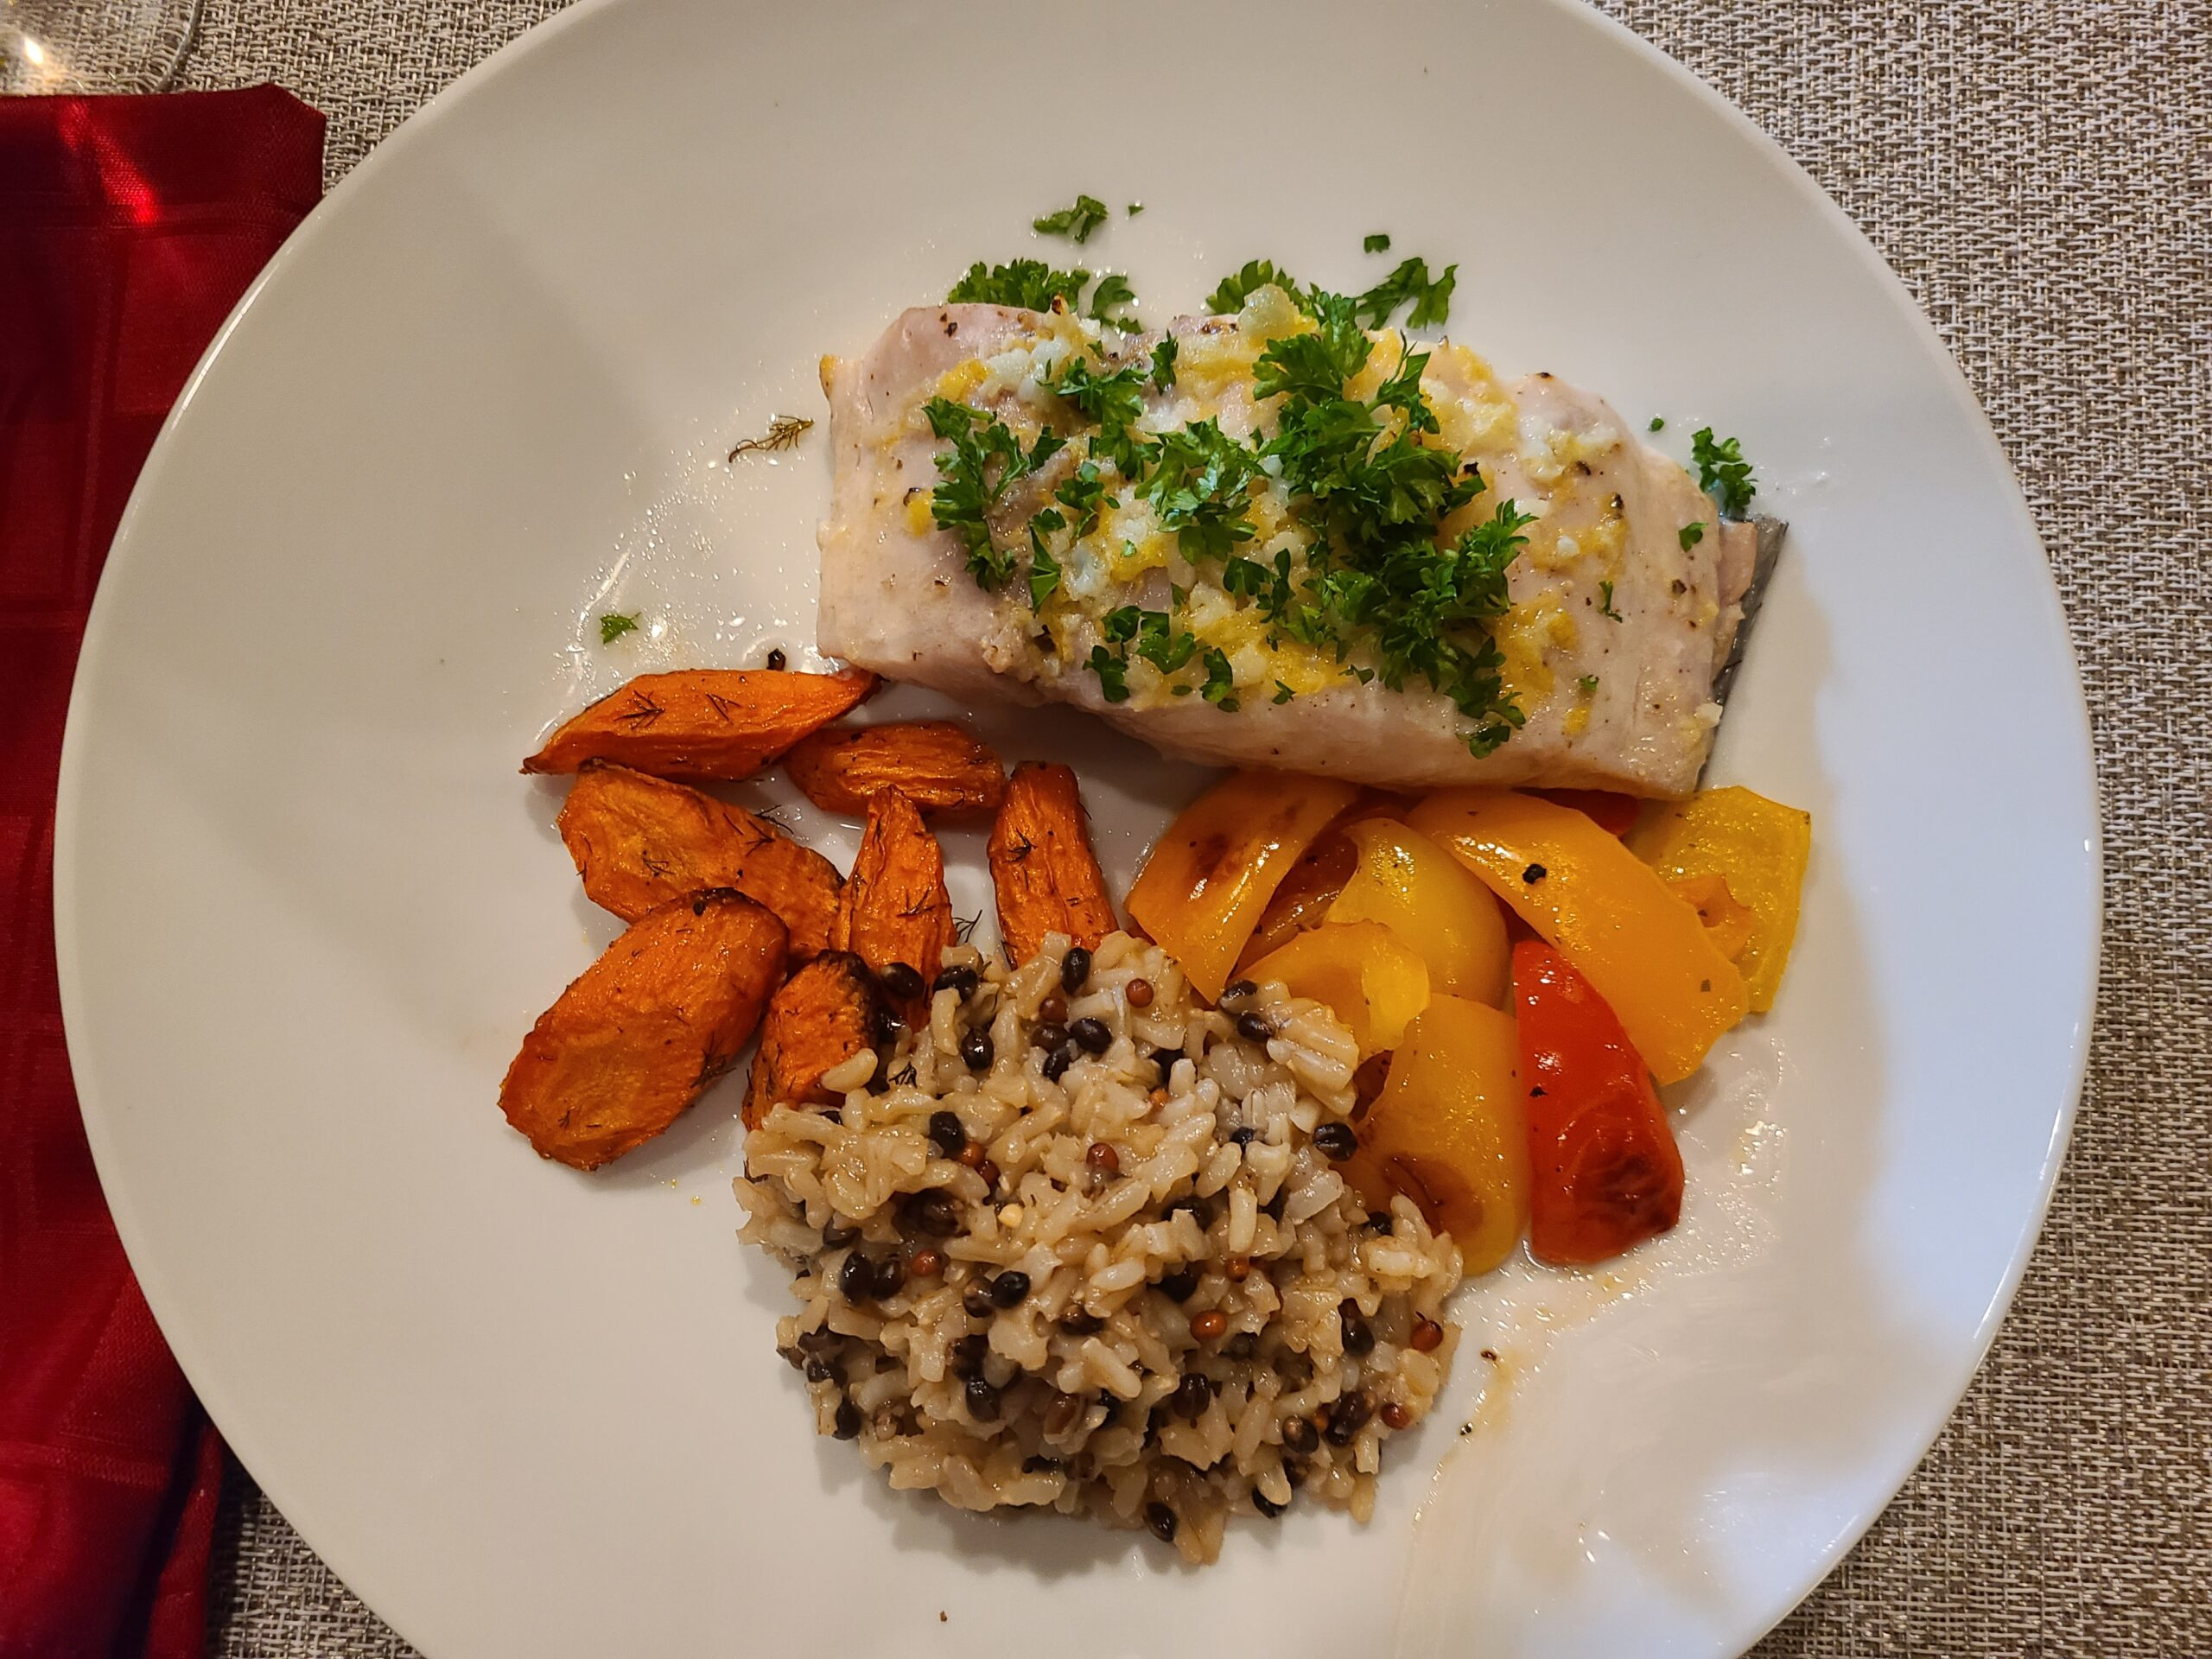 Mahi Mahi, Trader Joe's Brown Rice Medley, Roasted Carrots with Dill, Roasted Red and Yellow Peppers.